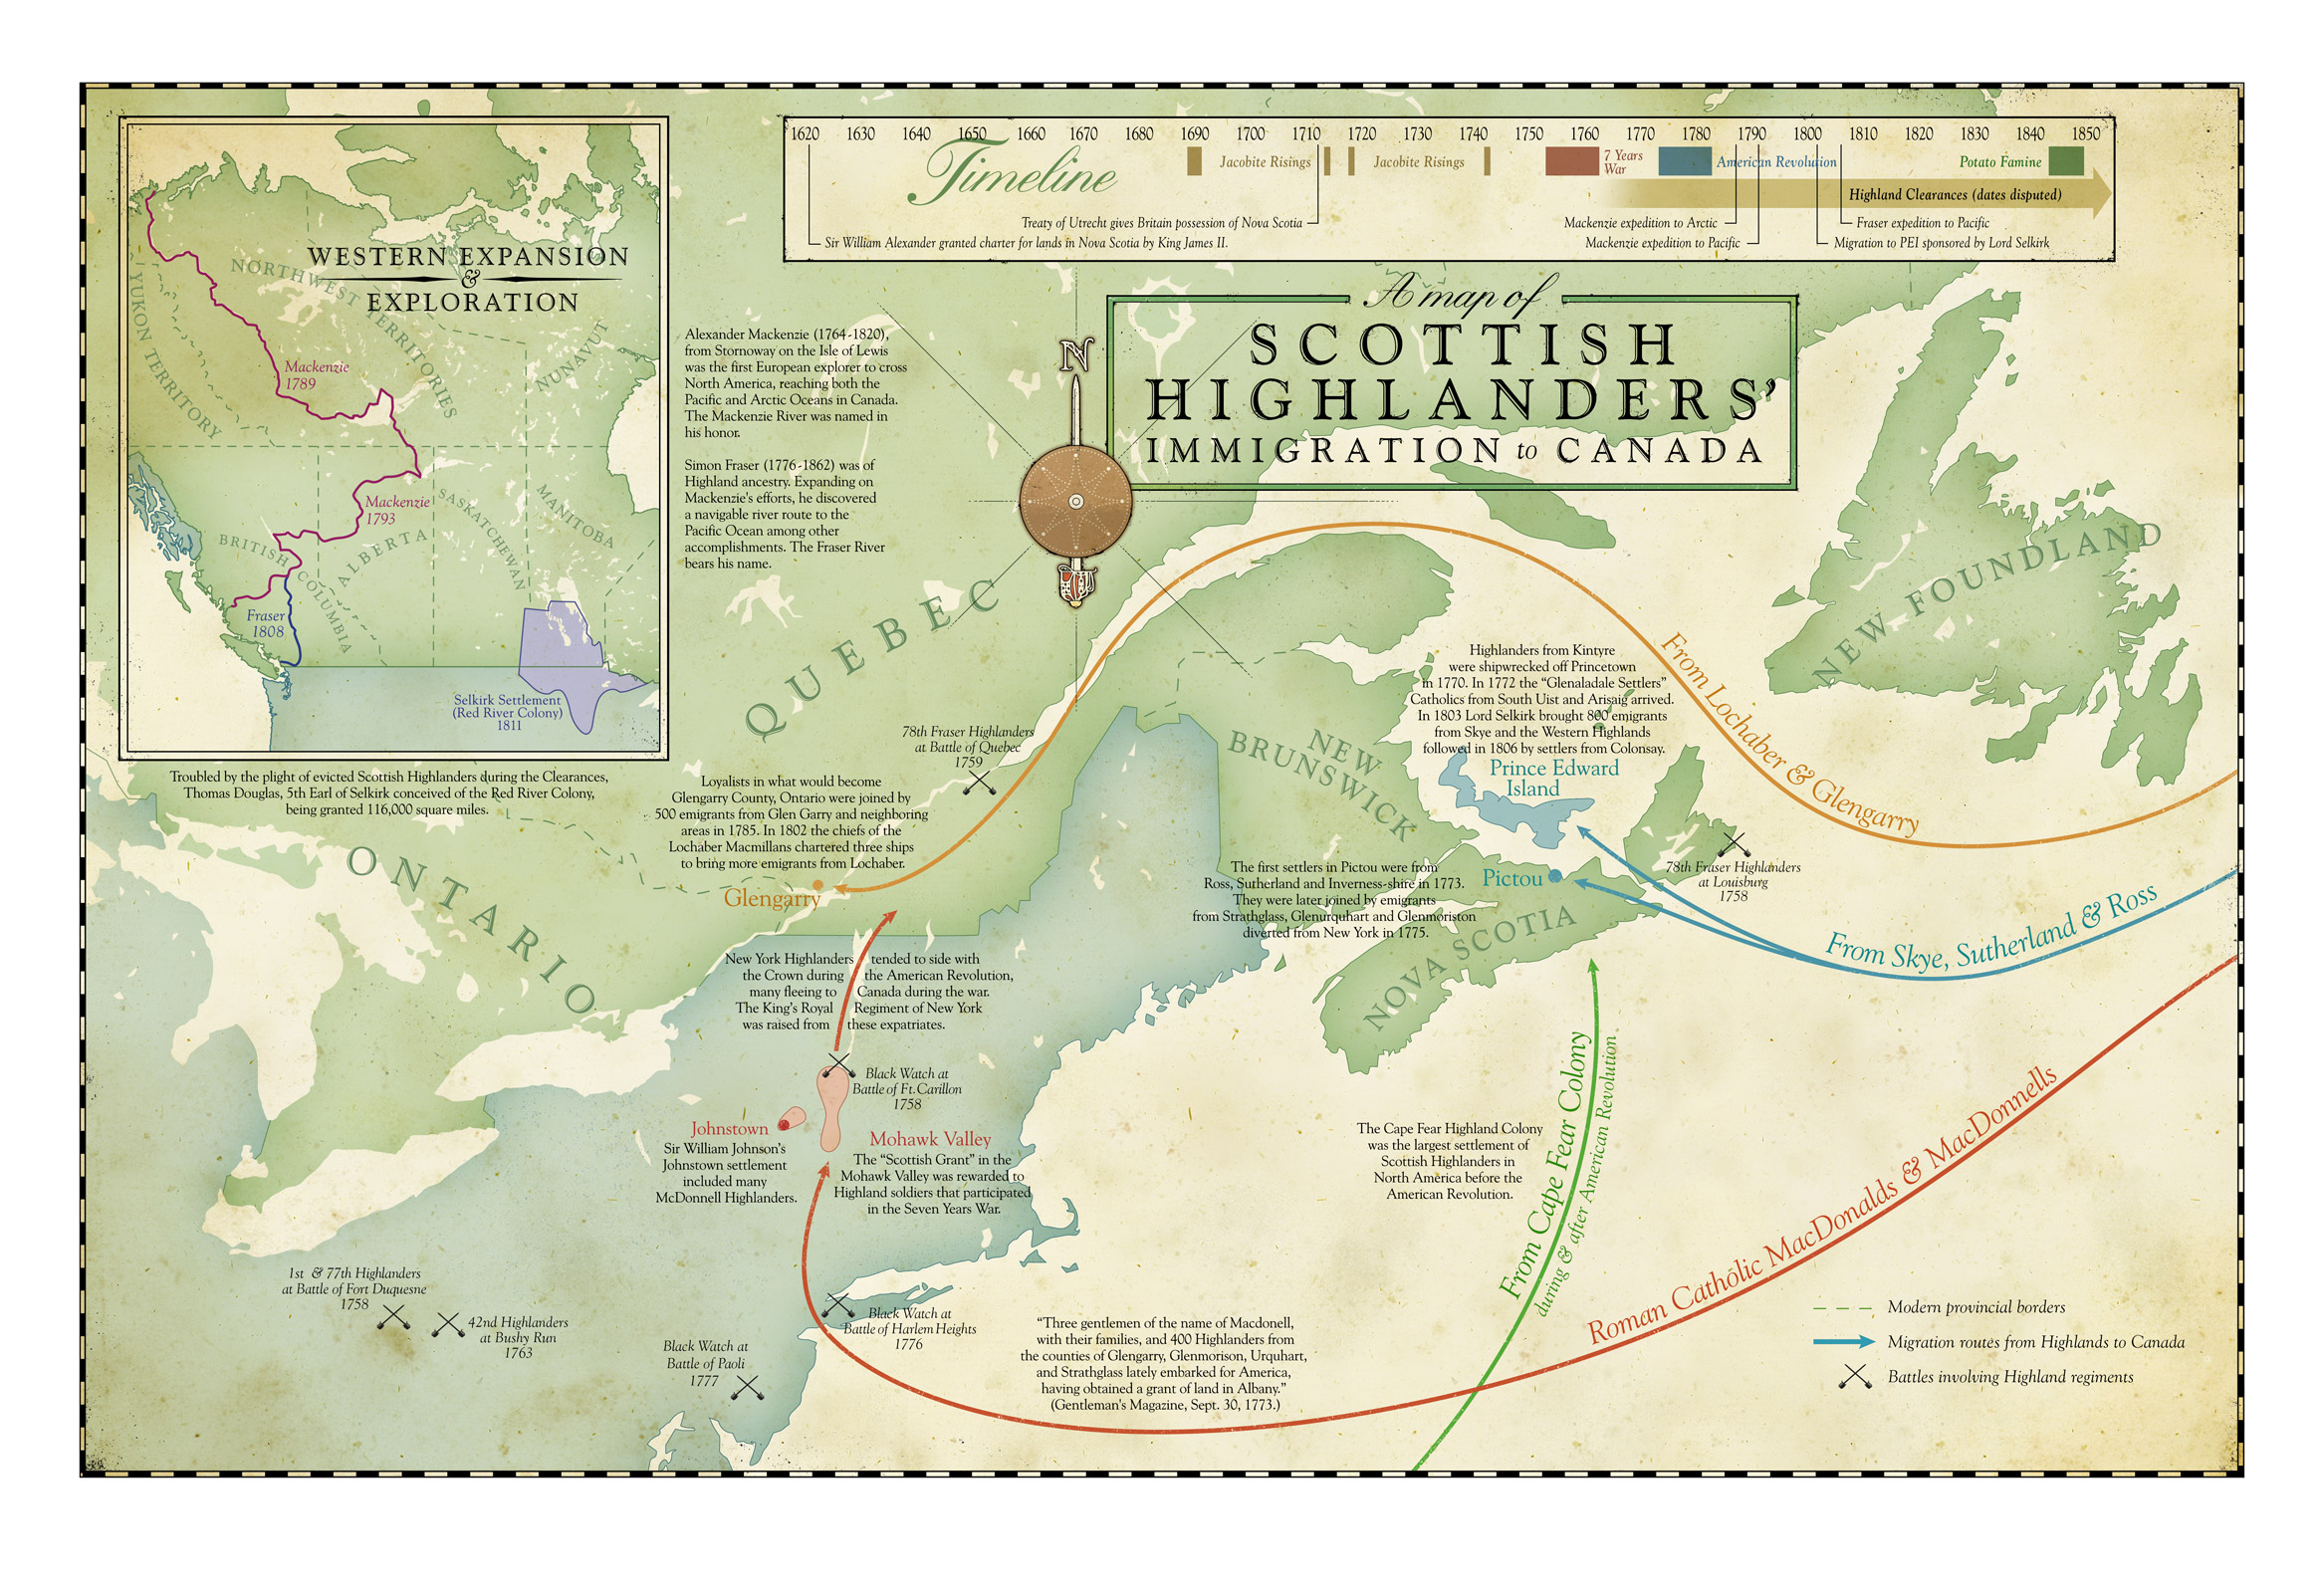 Map and timeline of Scottish Highlanders' migrations to Canada